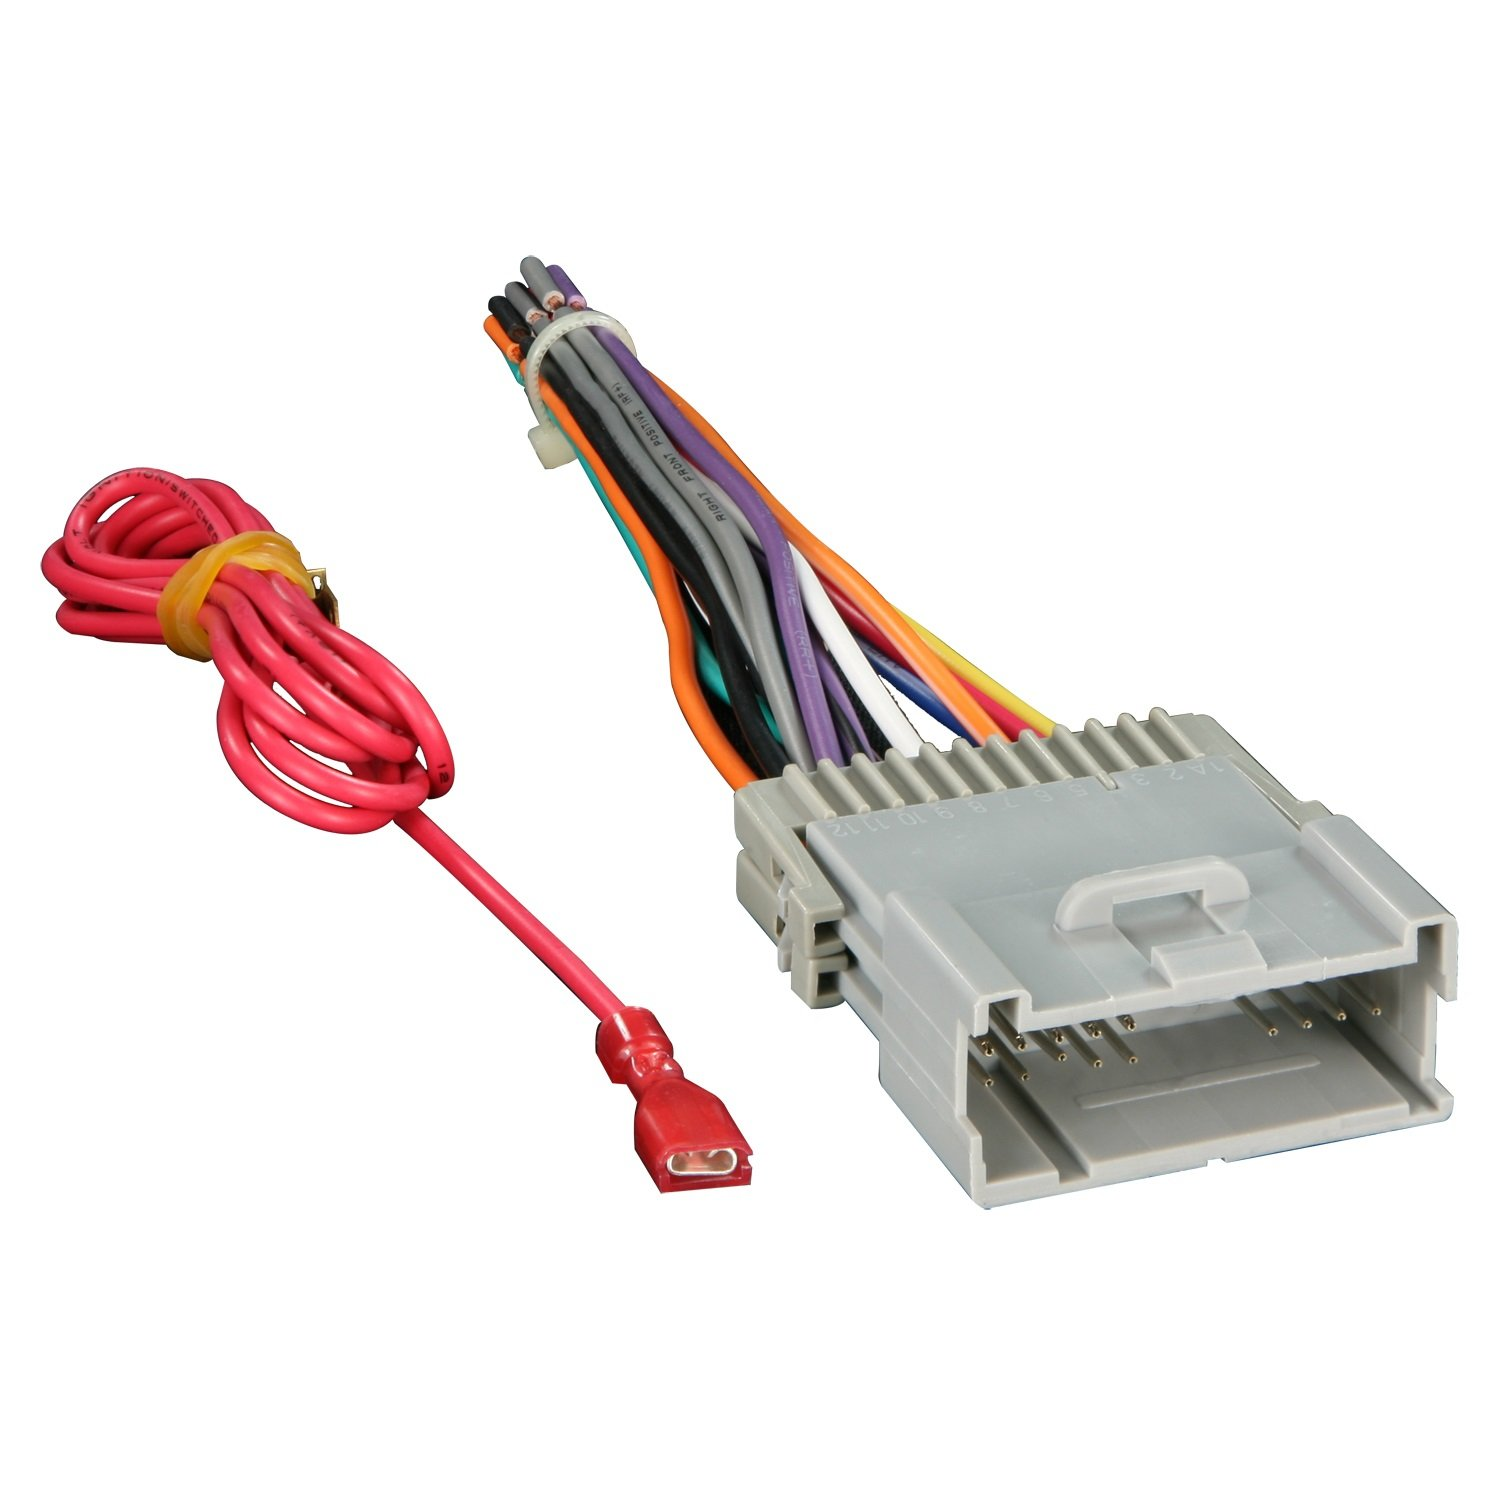 61eewxp9orL._SL1500_ amazon com metra 70 2003 radio wiring harness for gm 98 08 car audio wiring harness kits at webbmarketing.co